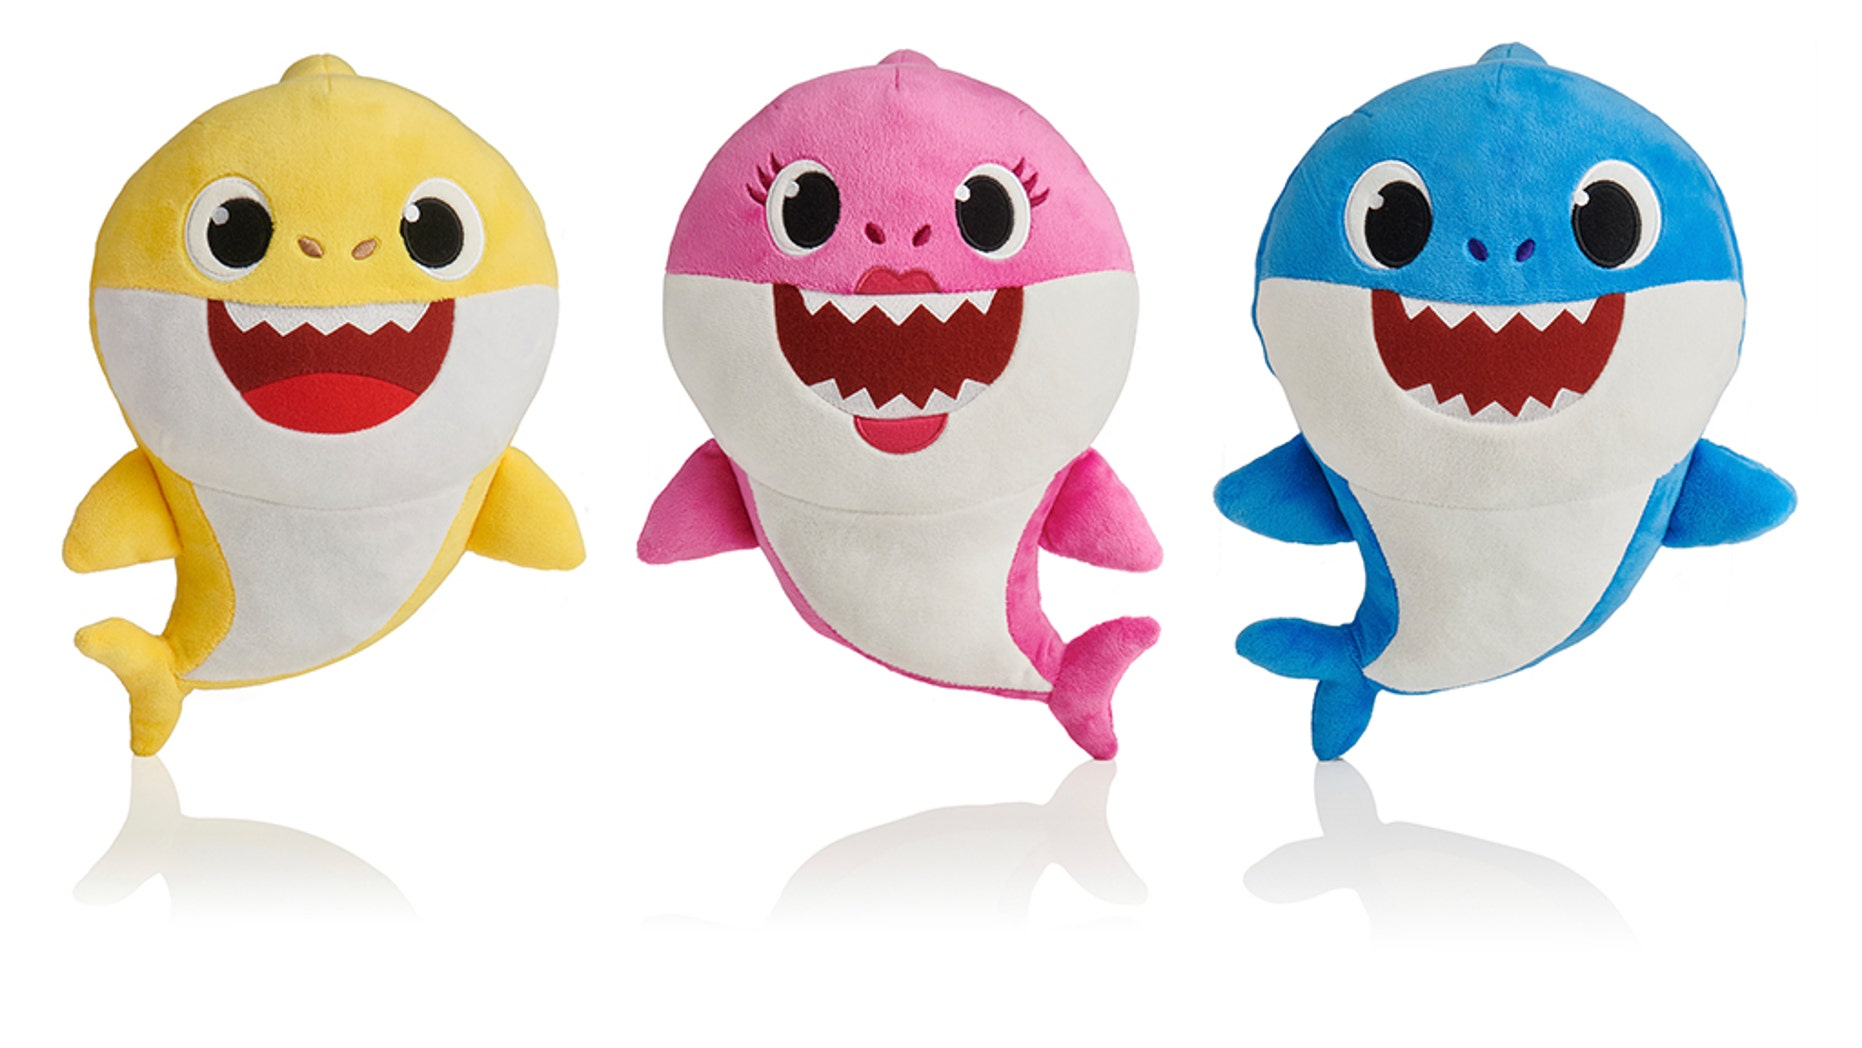 "Wee pinkfong Baby Shark family of singing plush toys. ""Baby Shark,"" the wildly popular children's You Tube video that dives into a song about sharks has landed on the Billboard Hot 100 chart this week"